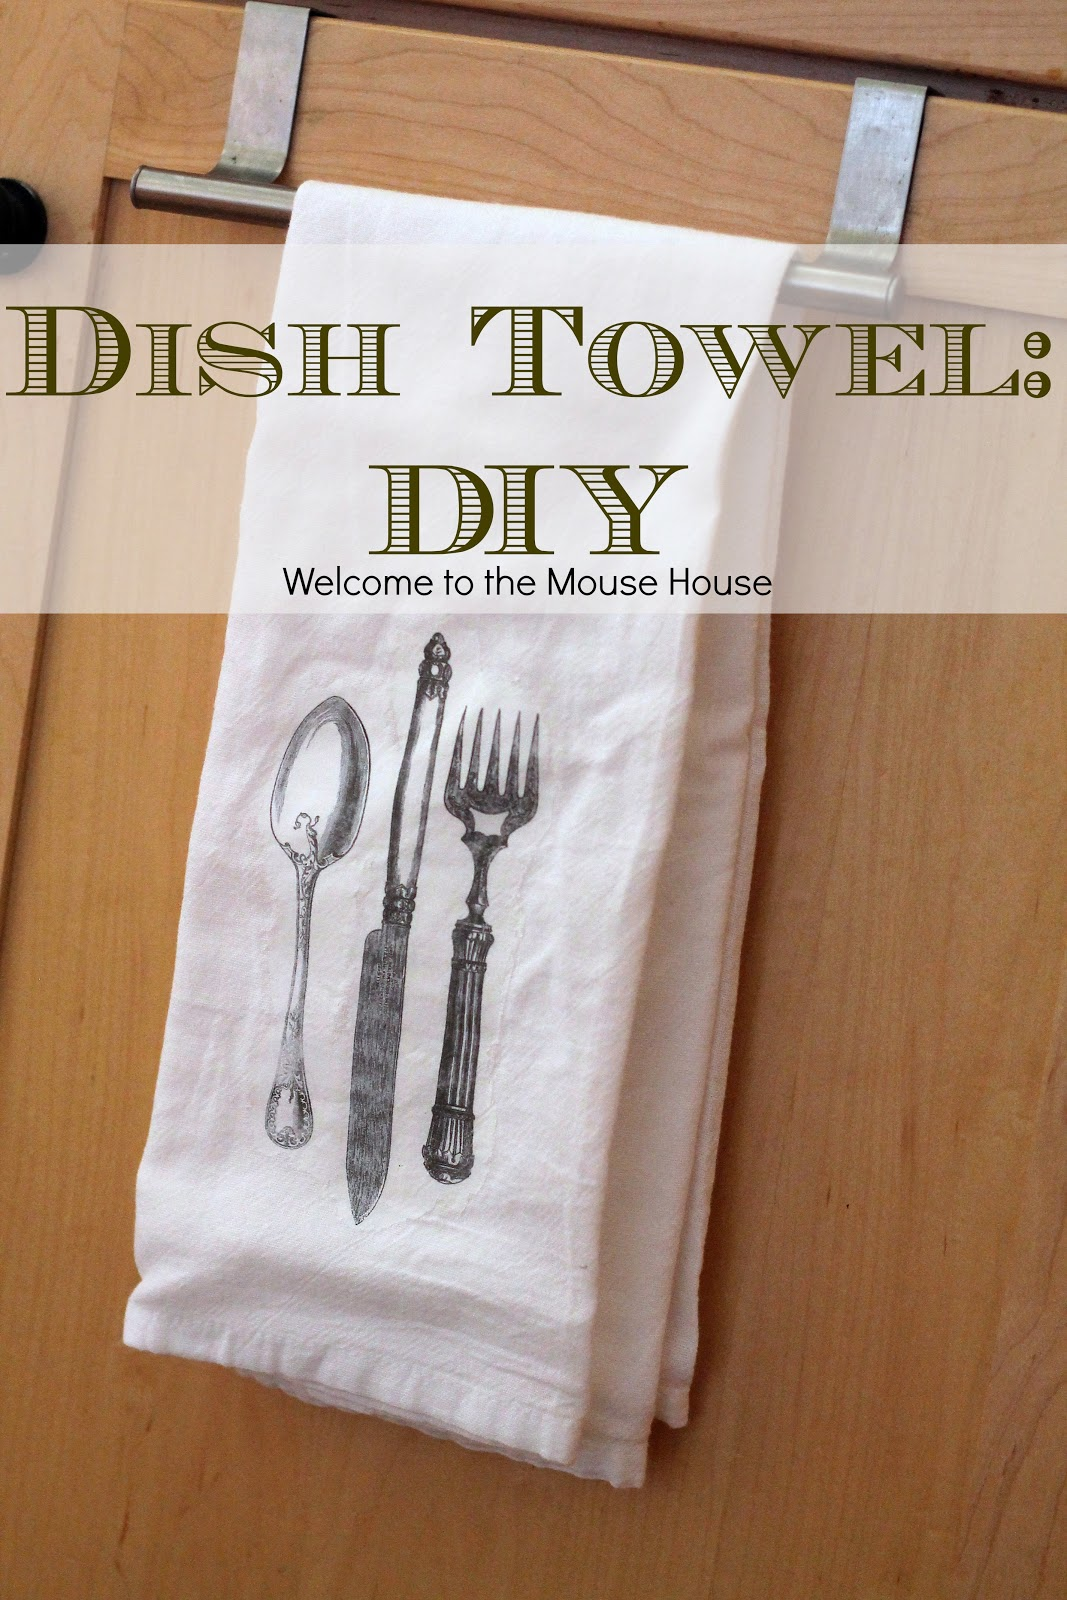 Dish Towel Diy Image Transfer Tutorial